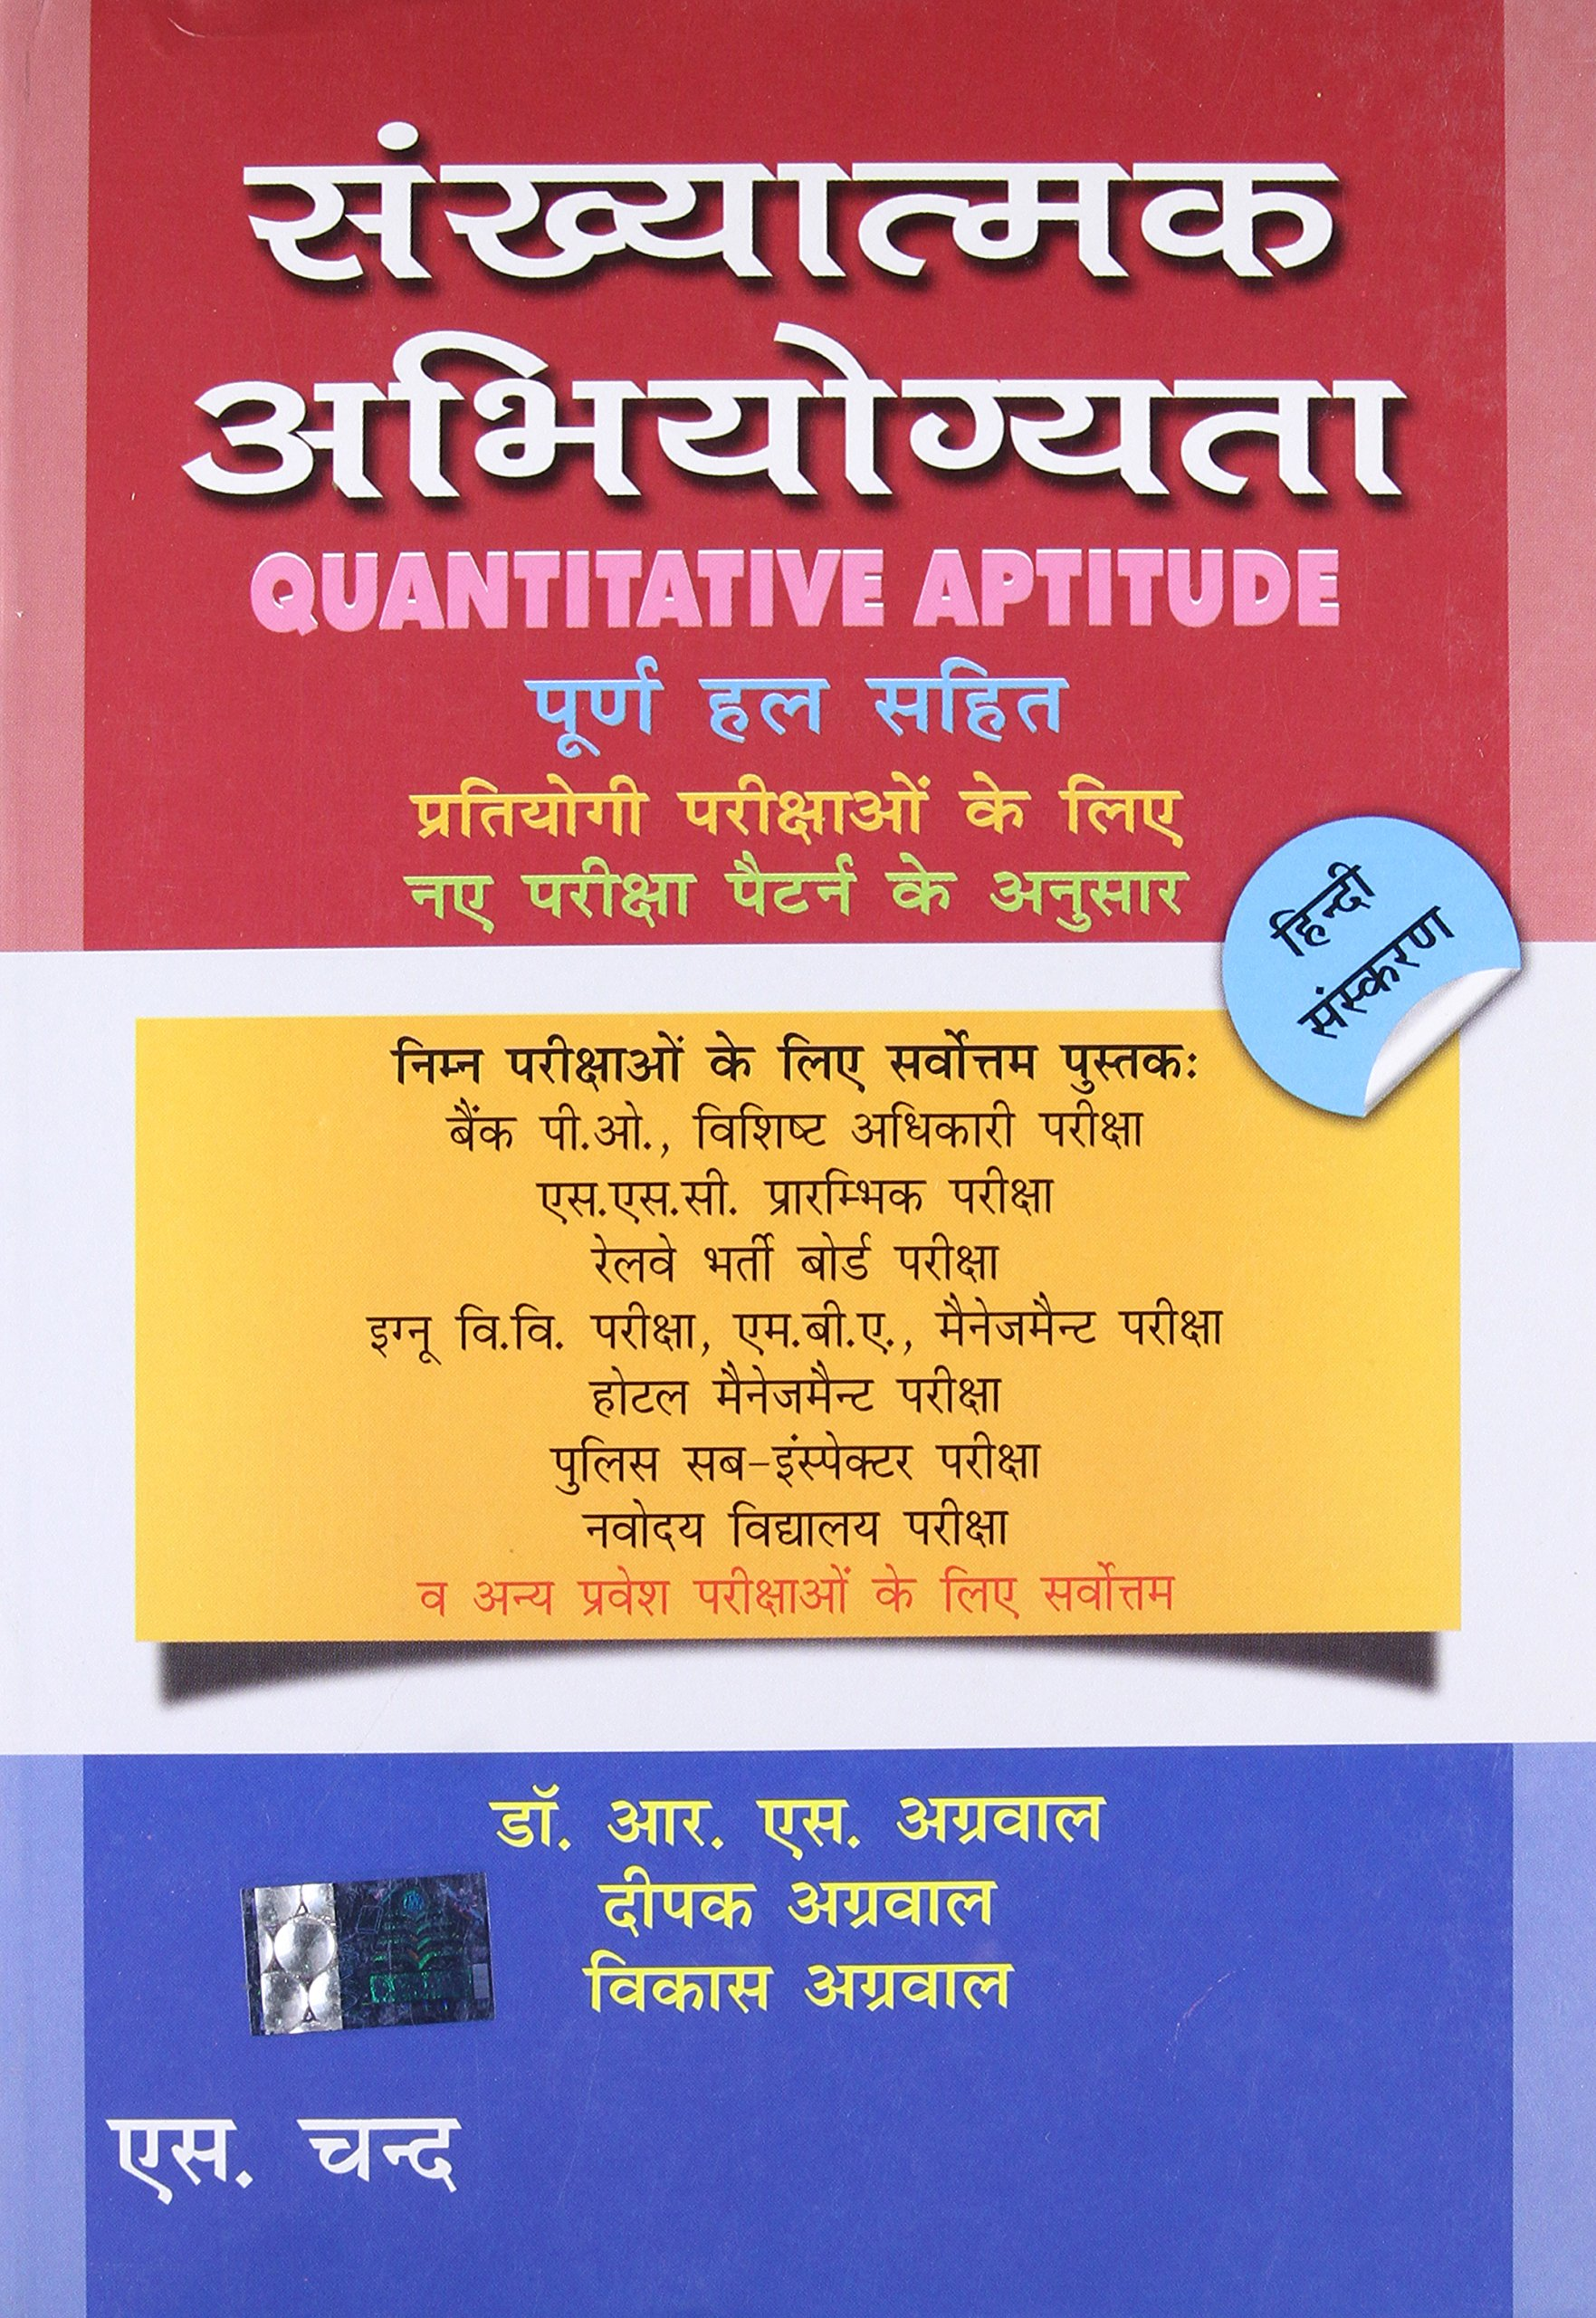 Rs aggarwal quantitative aptitude pdf free download 2019